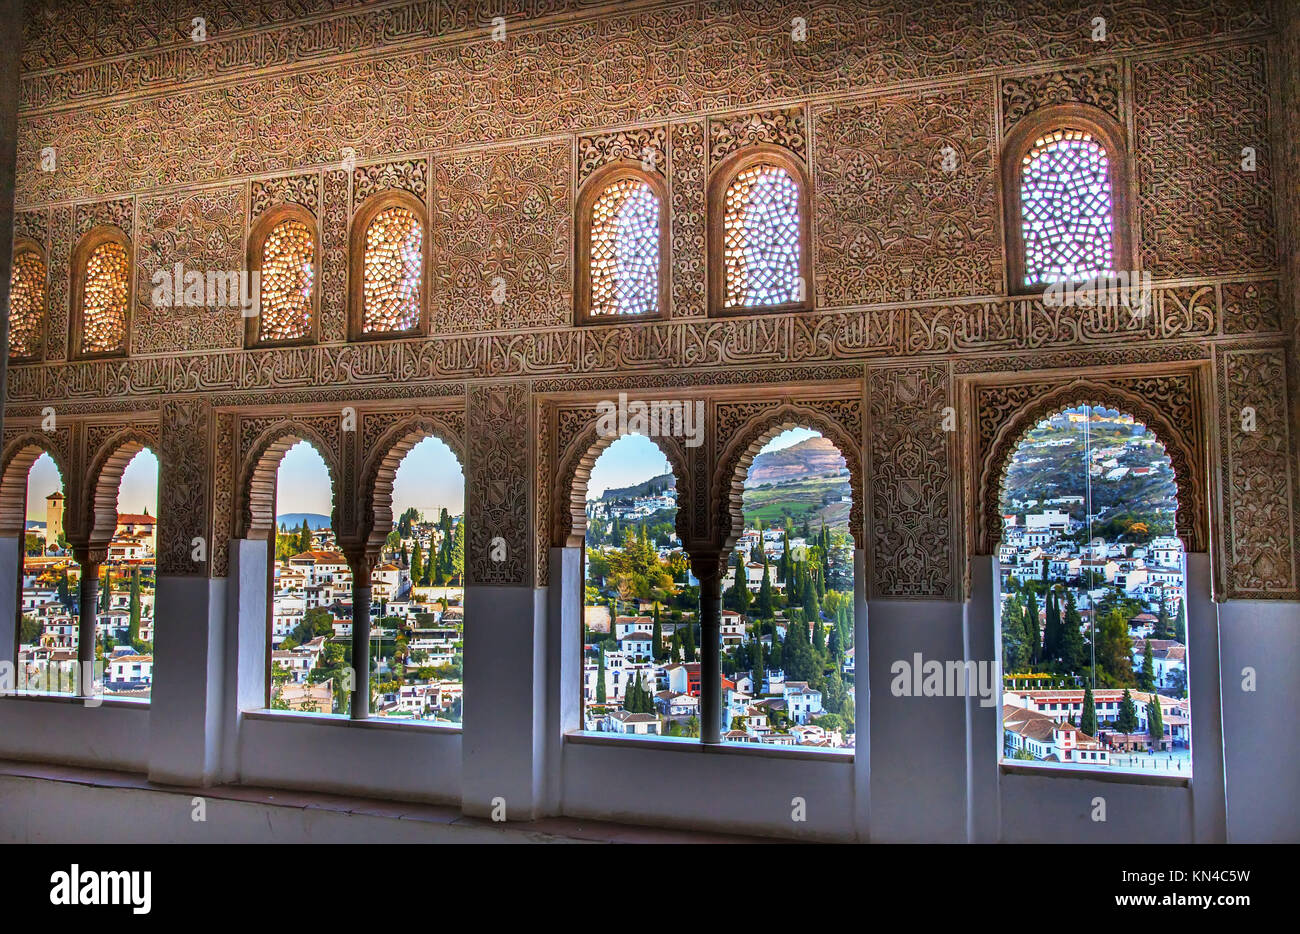 Window Wall Designs Alhambra Moorish Wall Windows Patterns Designs City View Granada